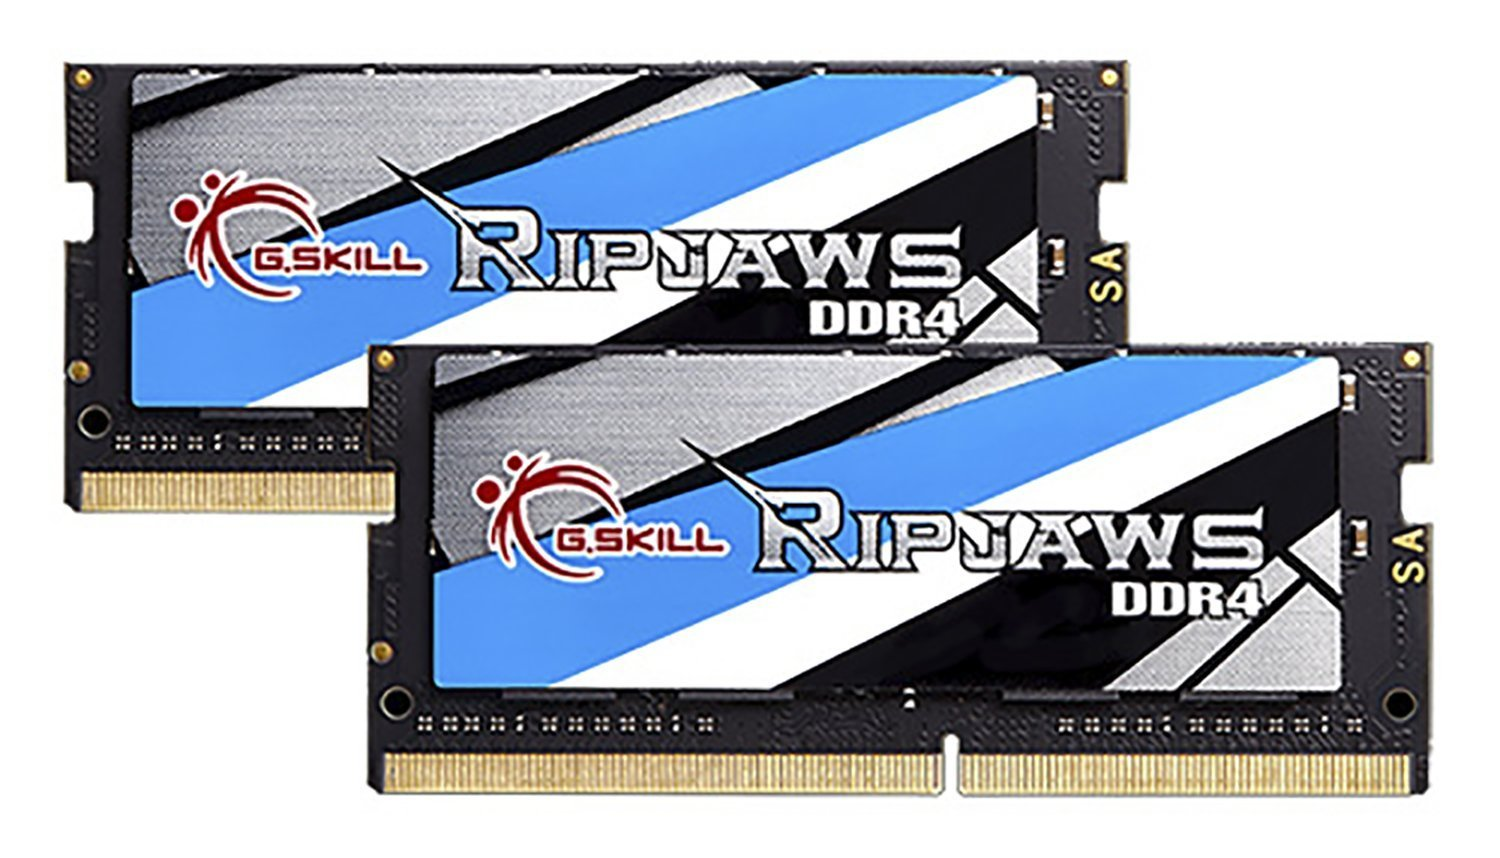 G.SKILL Ripjaws 8GB (2 x 4GB) 260-Pin DDR4 SO-DIMM DDR4 2400 (PC4 19200) Laptop Memory Model F4-2400C16D-8GRS